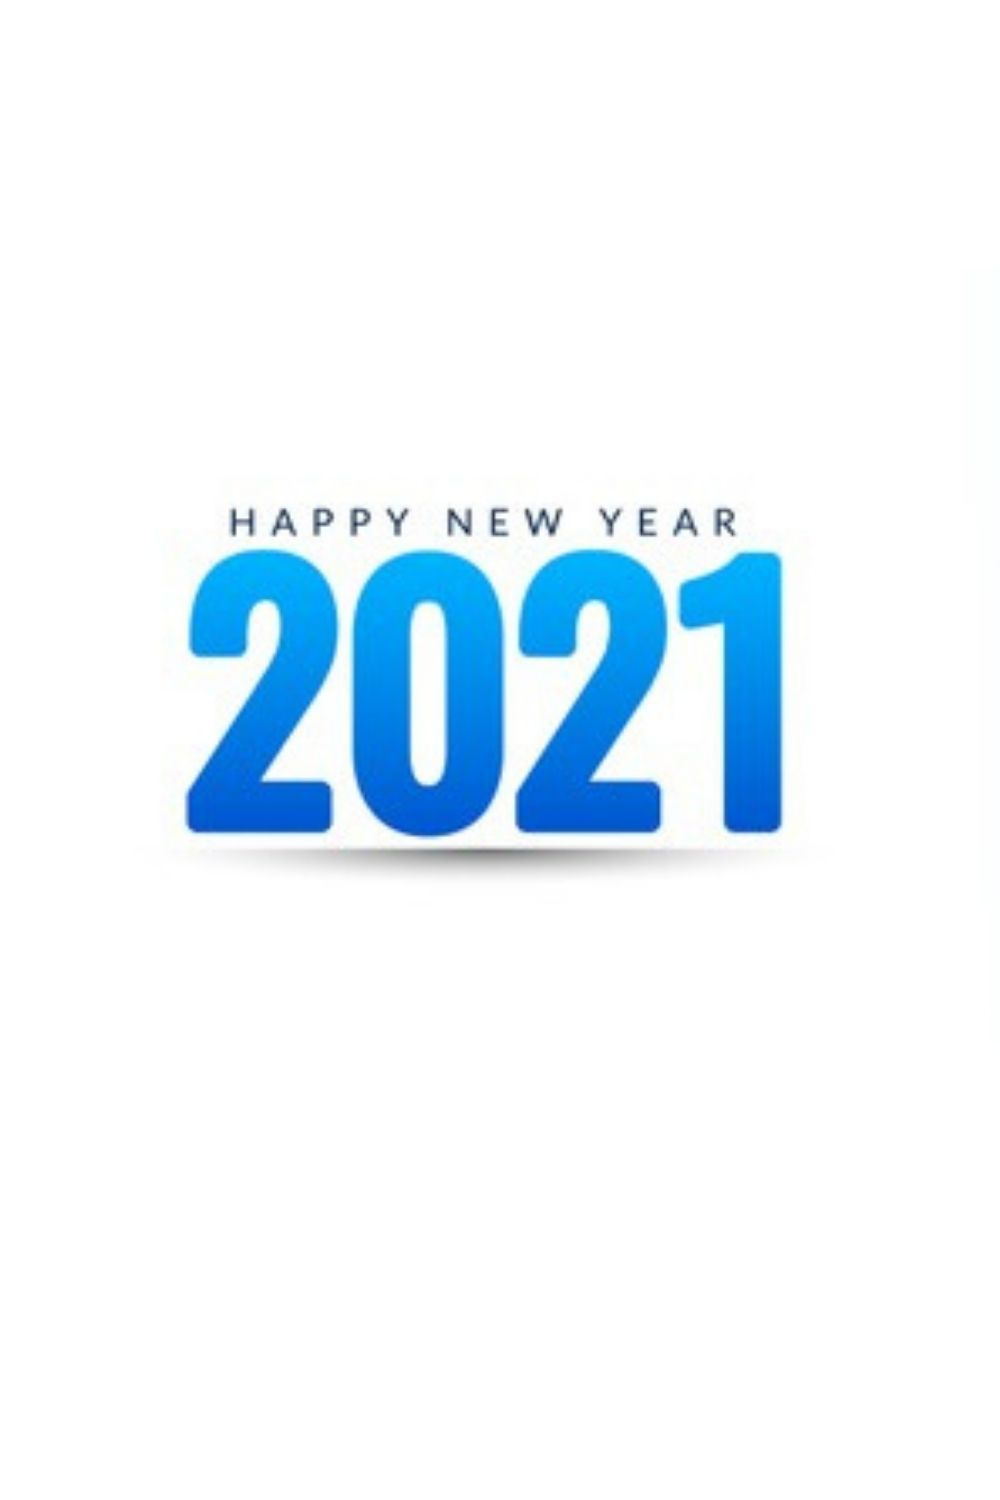 Pin On Happy New Year Wallpapers 2022 Backgrounds